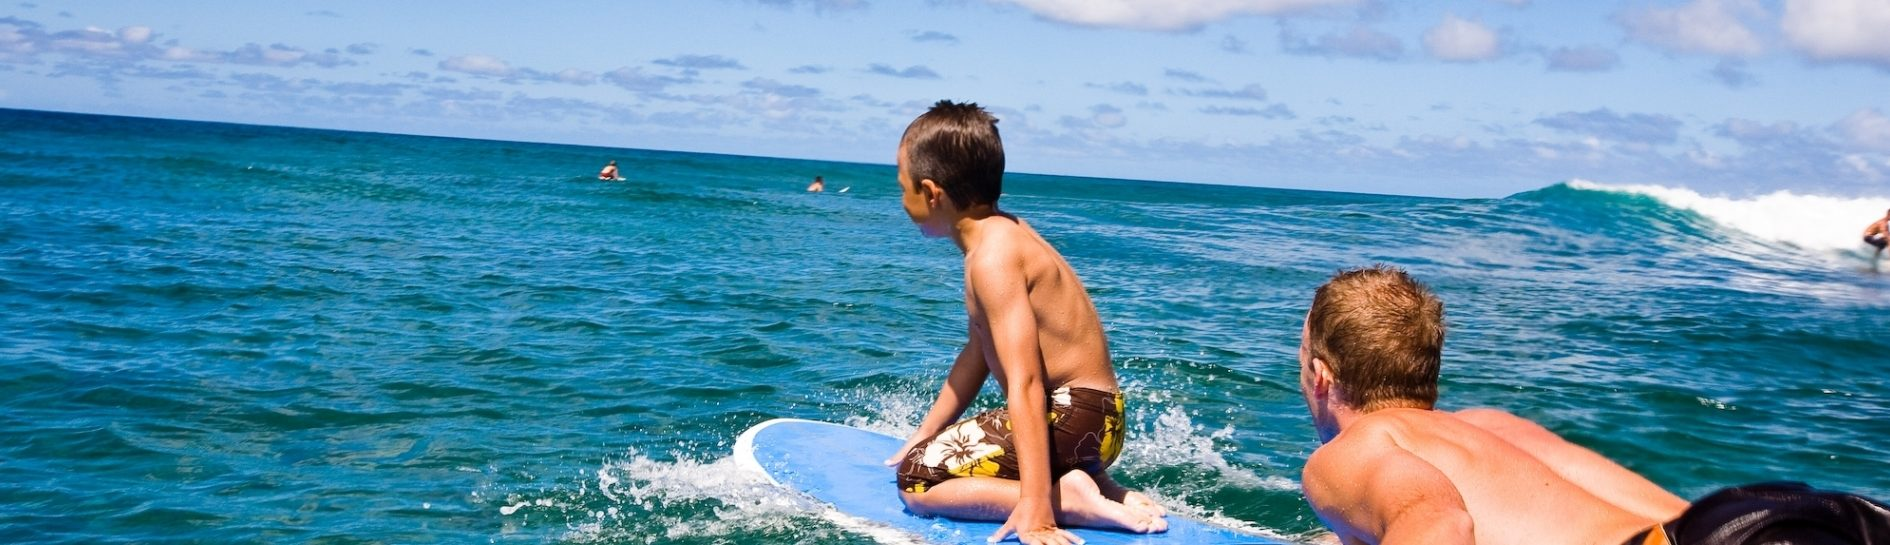 Hawaii vacation surfing boys